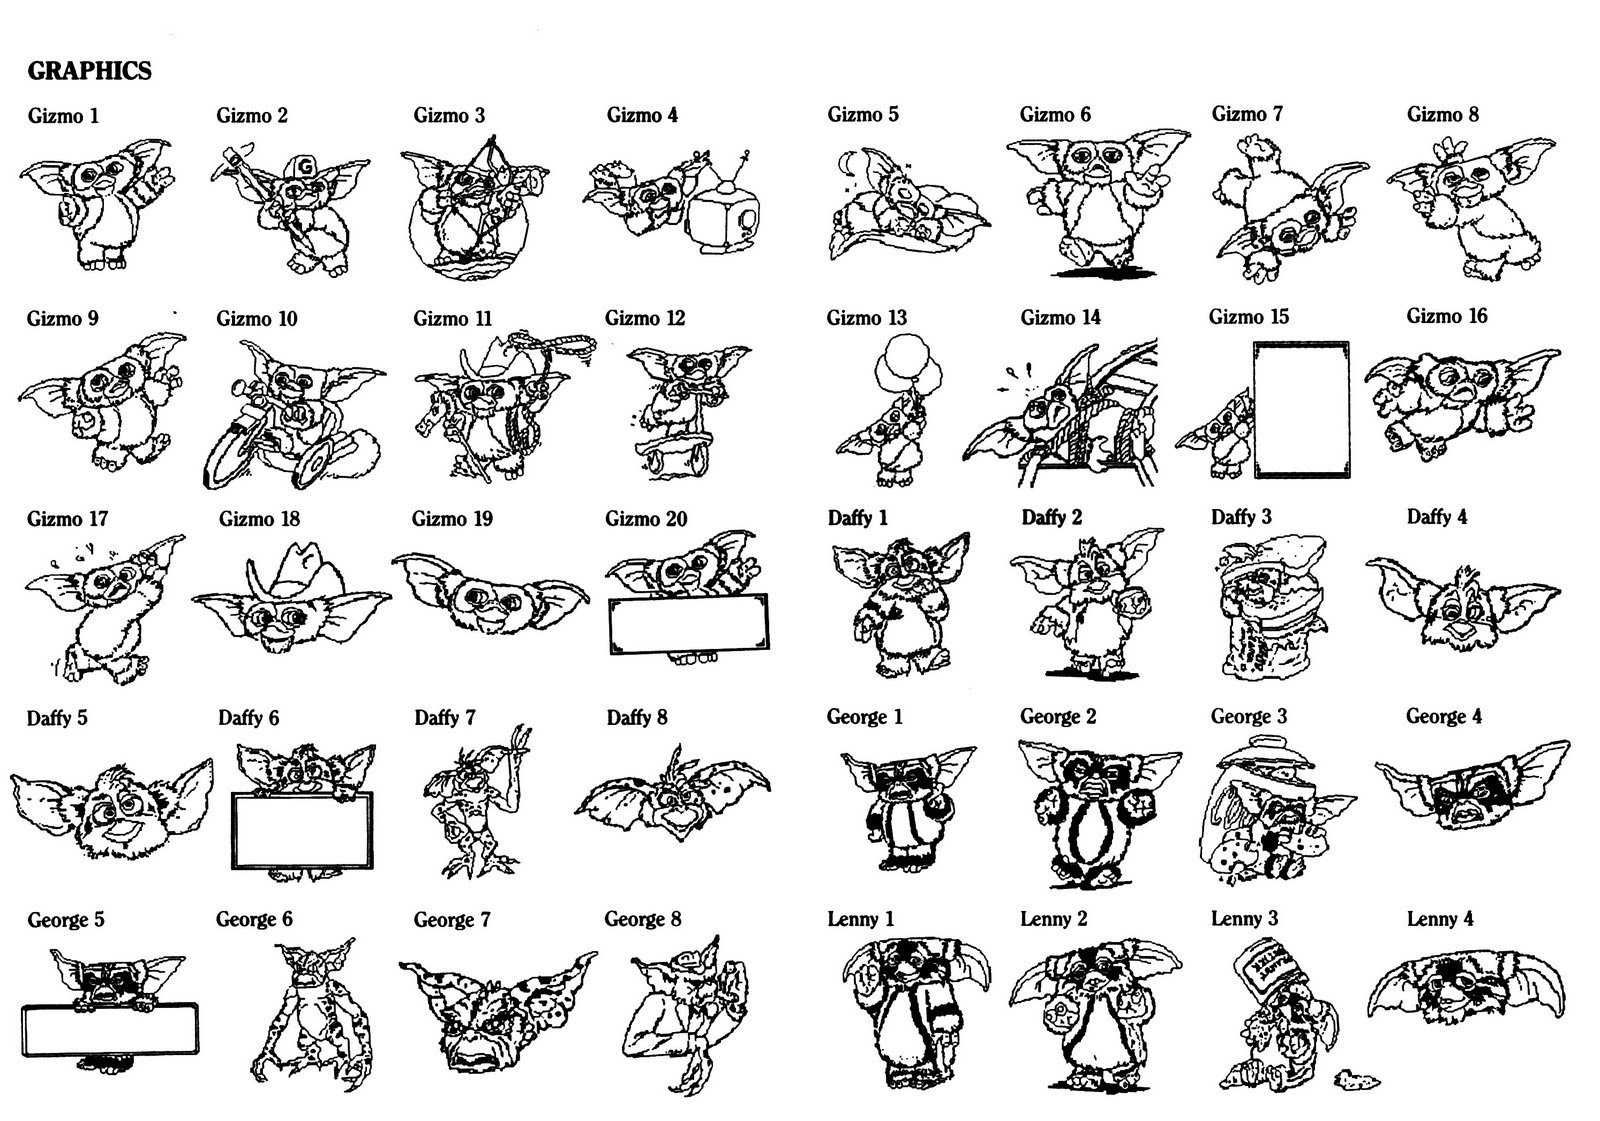 Gremlins 2 Coloring Book Image Graphics Mogwais G Wiki